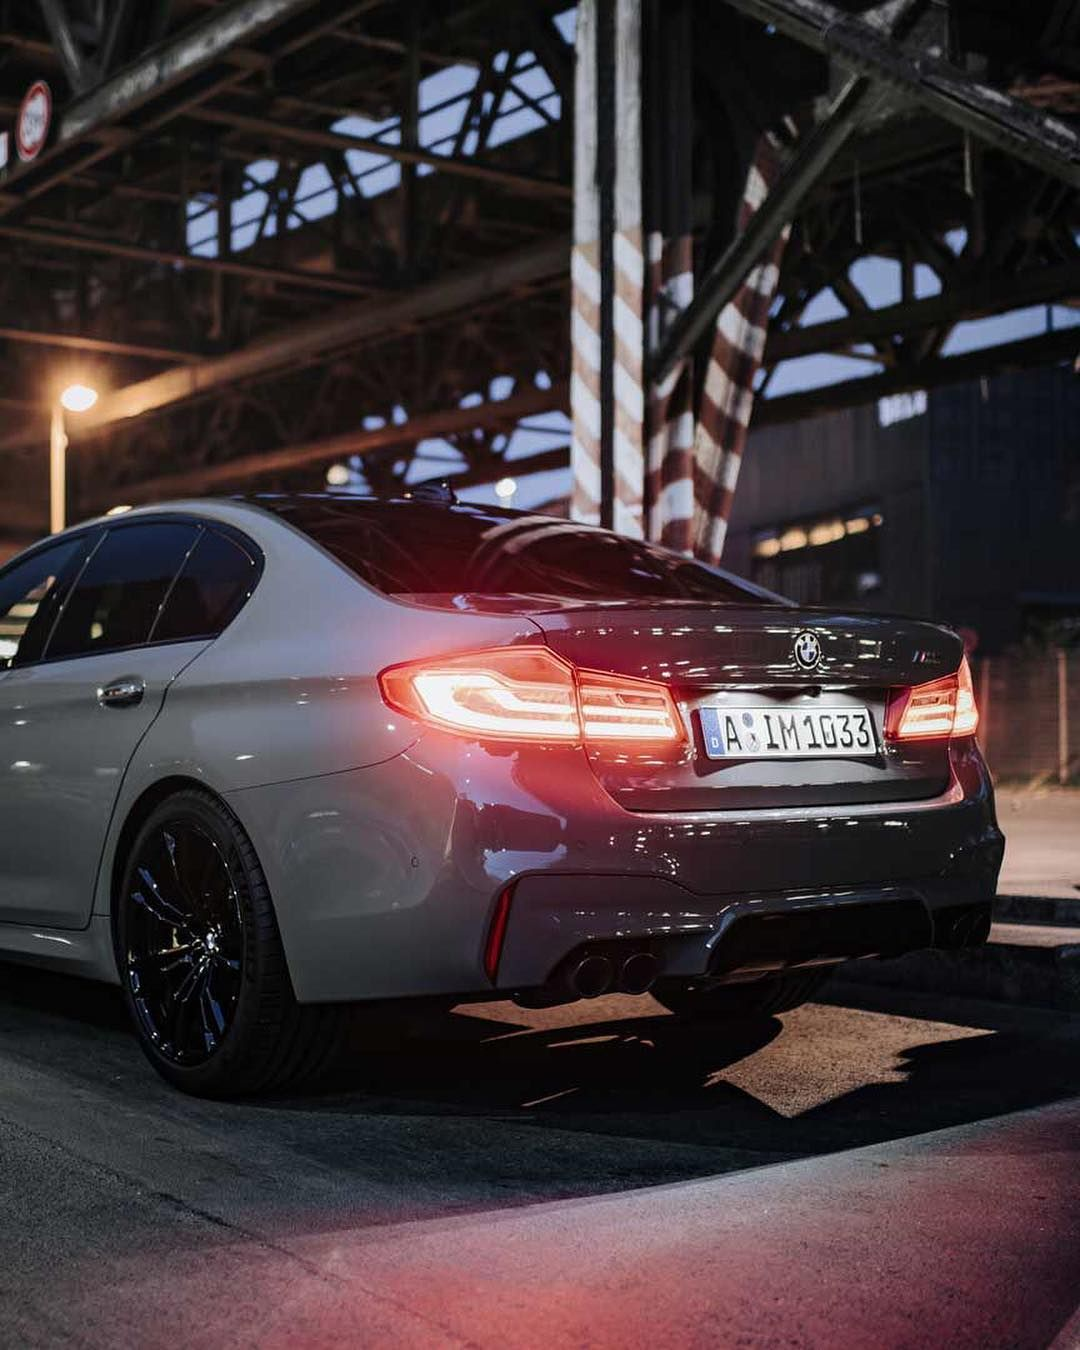 Bmw F90 M5 In Bmw Individual Grigio Medio With Images Bmw Bmw